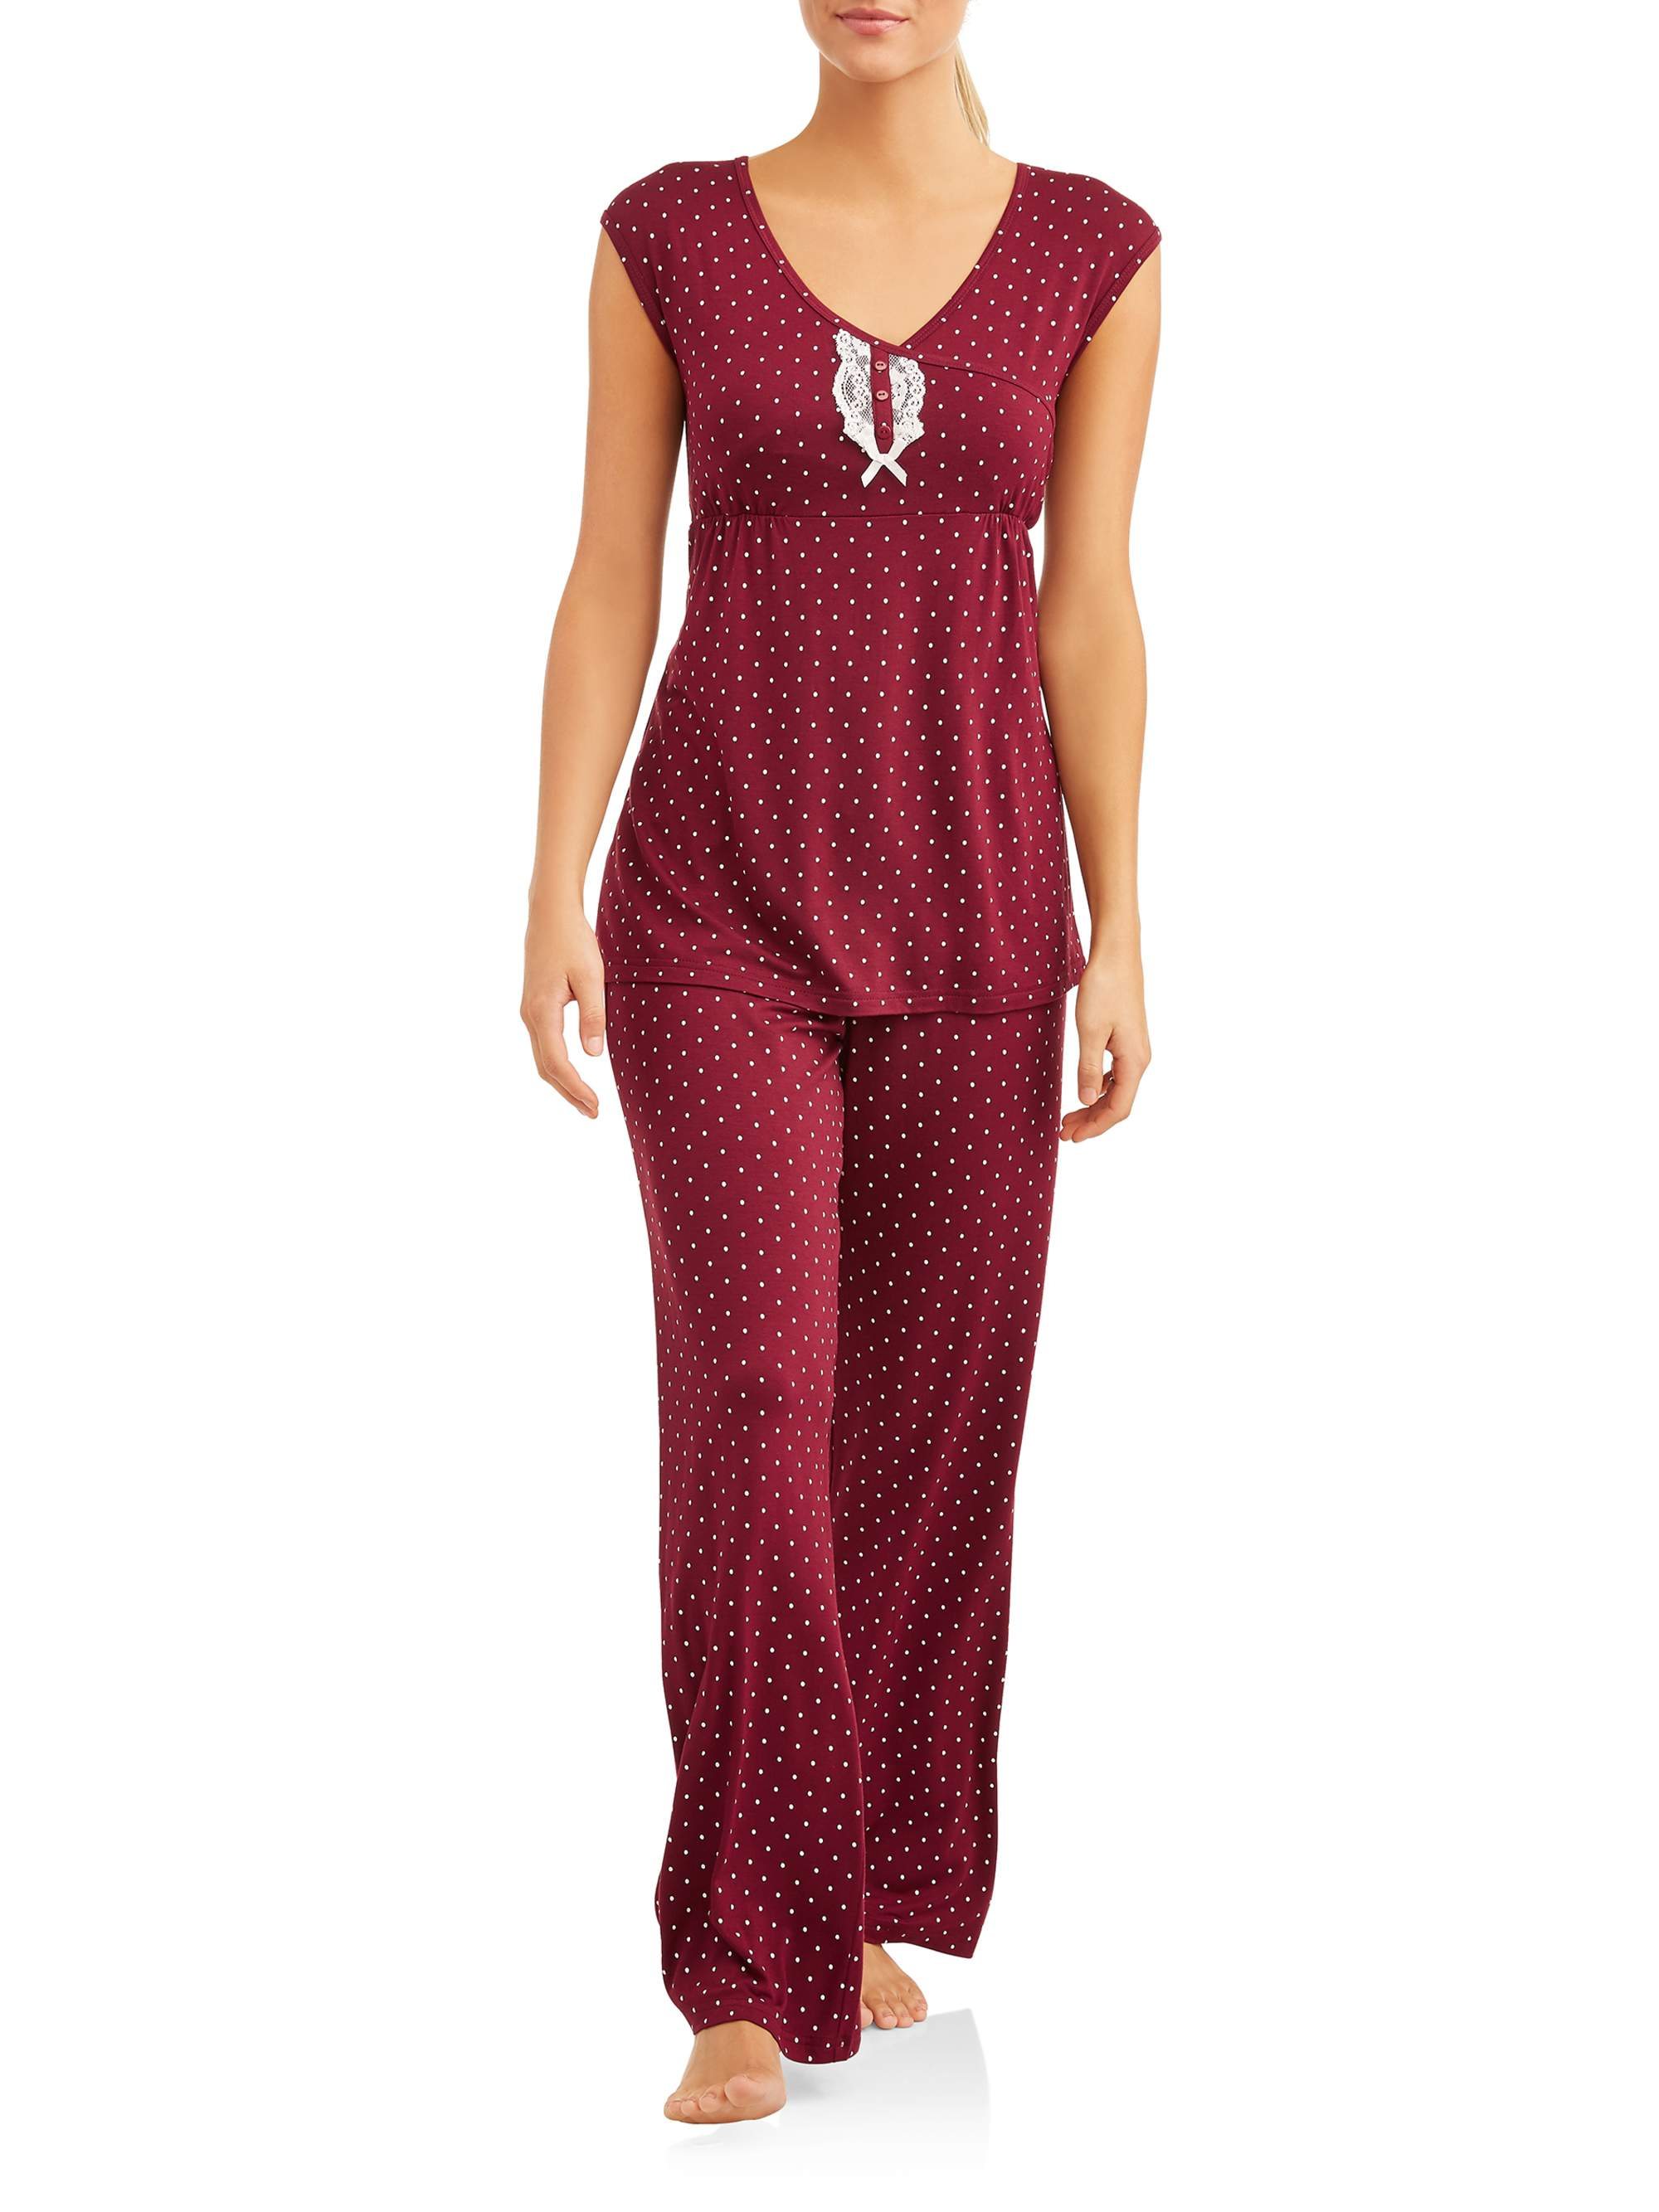 Maternity Nursing Sleeveless Snap-Down Henley Top and Pants Sleep Set by PPI Apparel Group